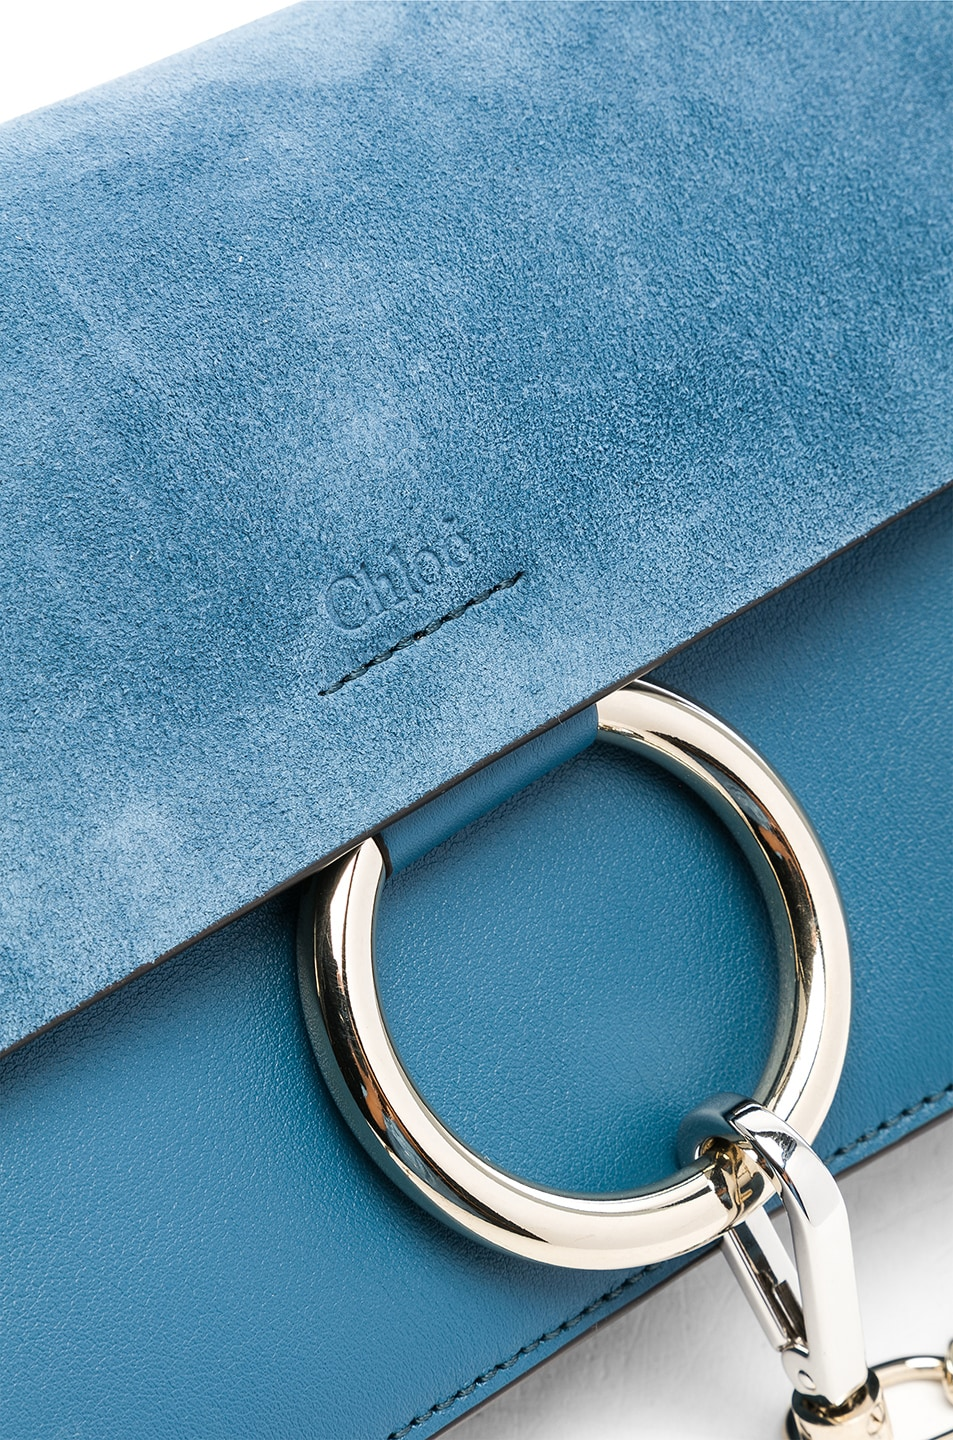 Image 7 of Chloe Small Faye Suede & Calfskin Shoulder Bag in Vinyl Blue